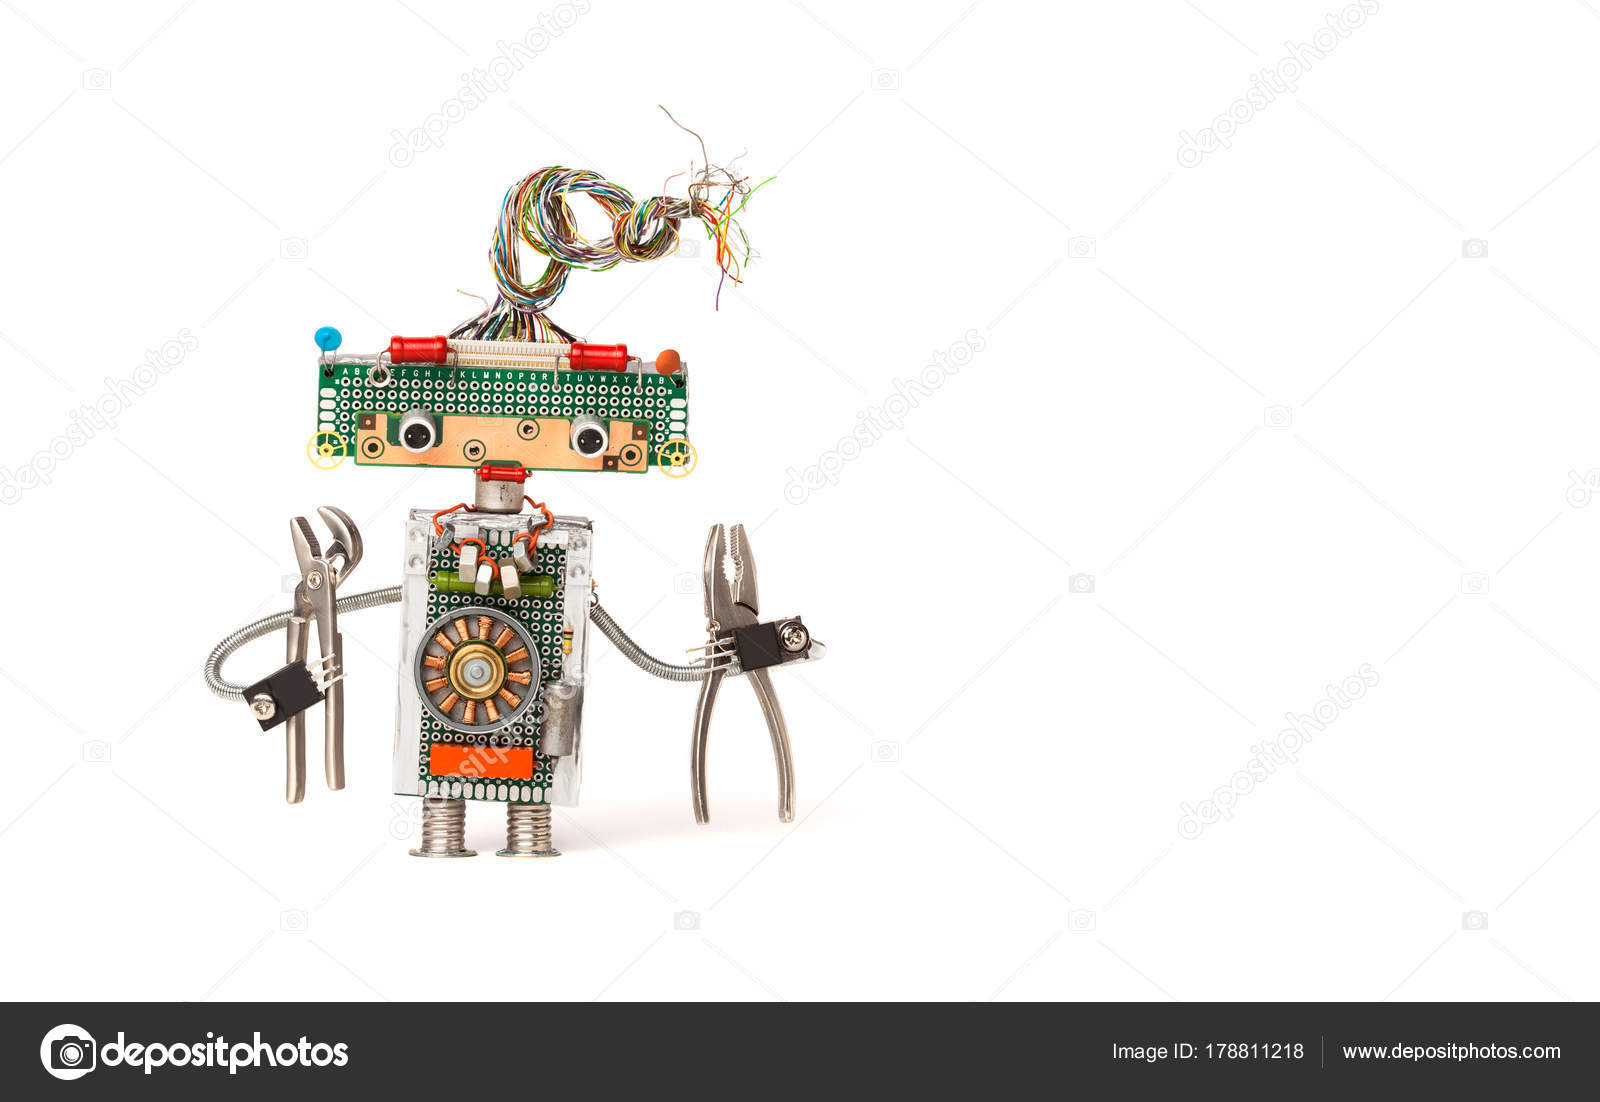 Funny robot electrician with pliers. Creative design robotic toy ...